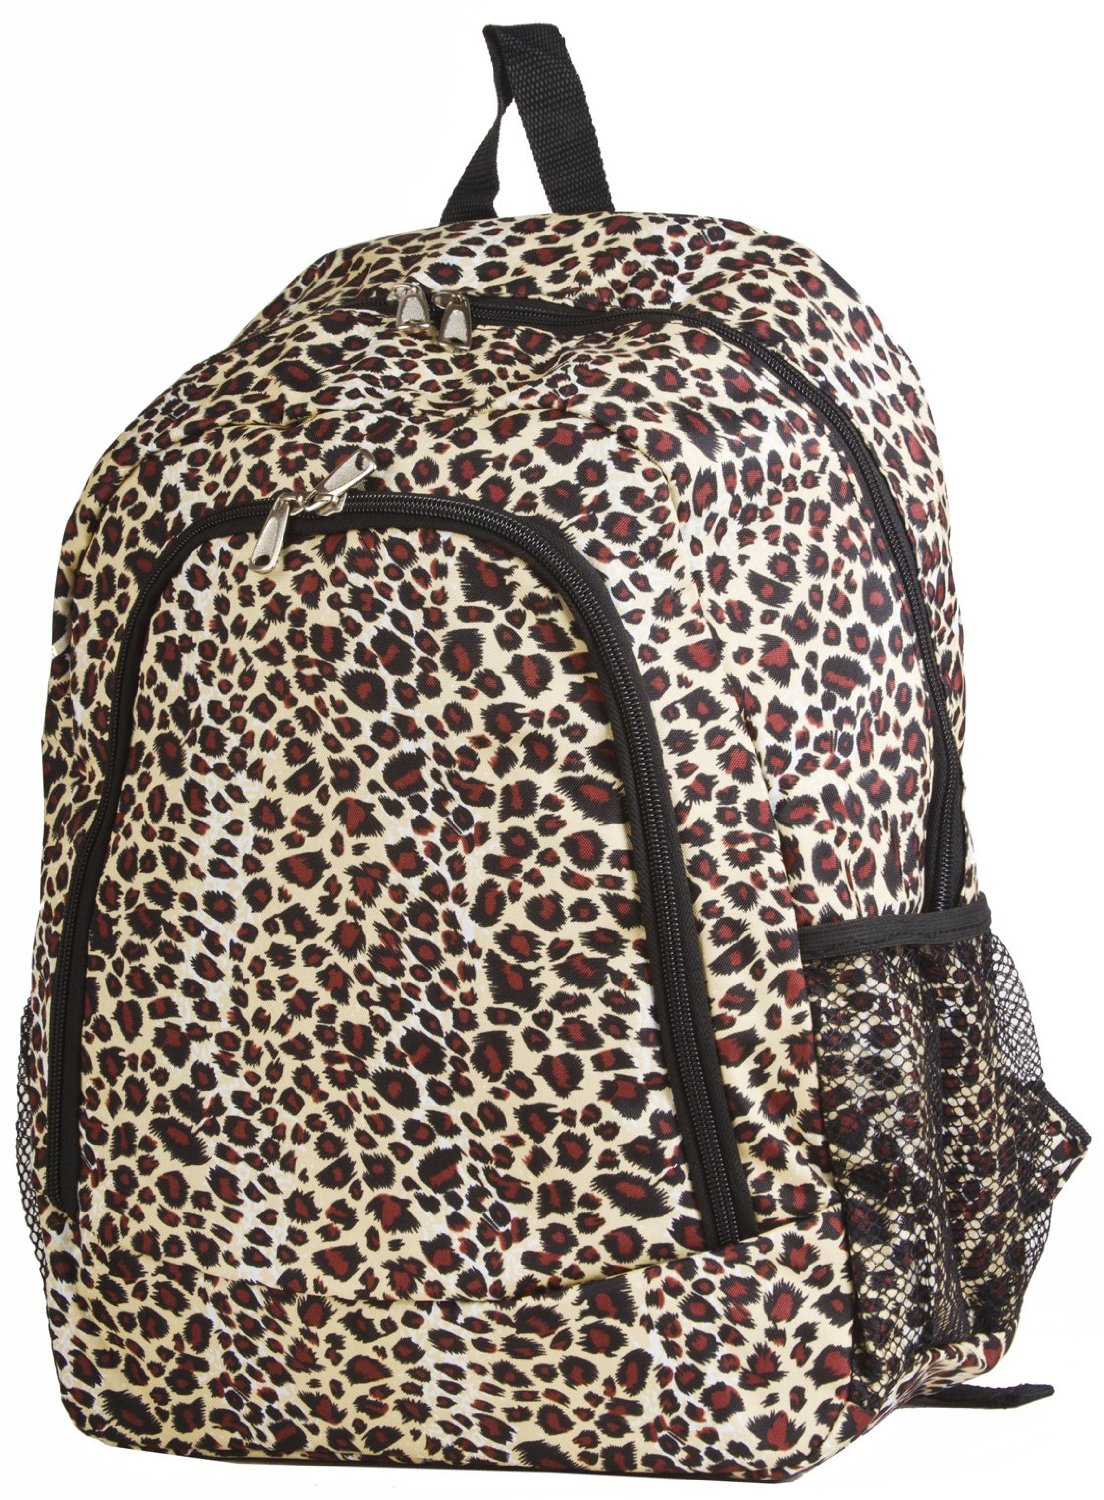 Jansport Leopard Backpack bH5a1H8I